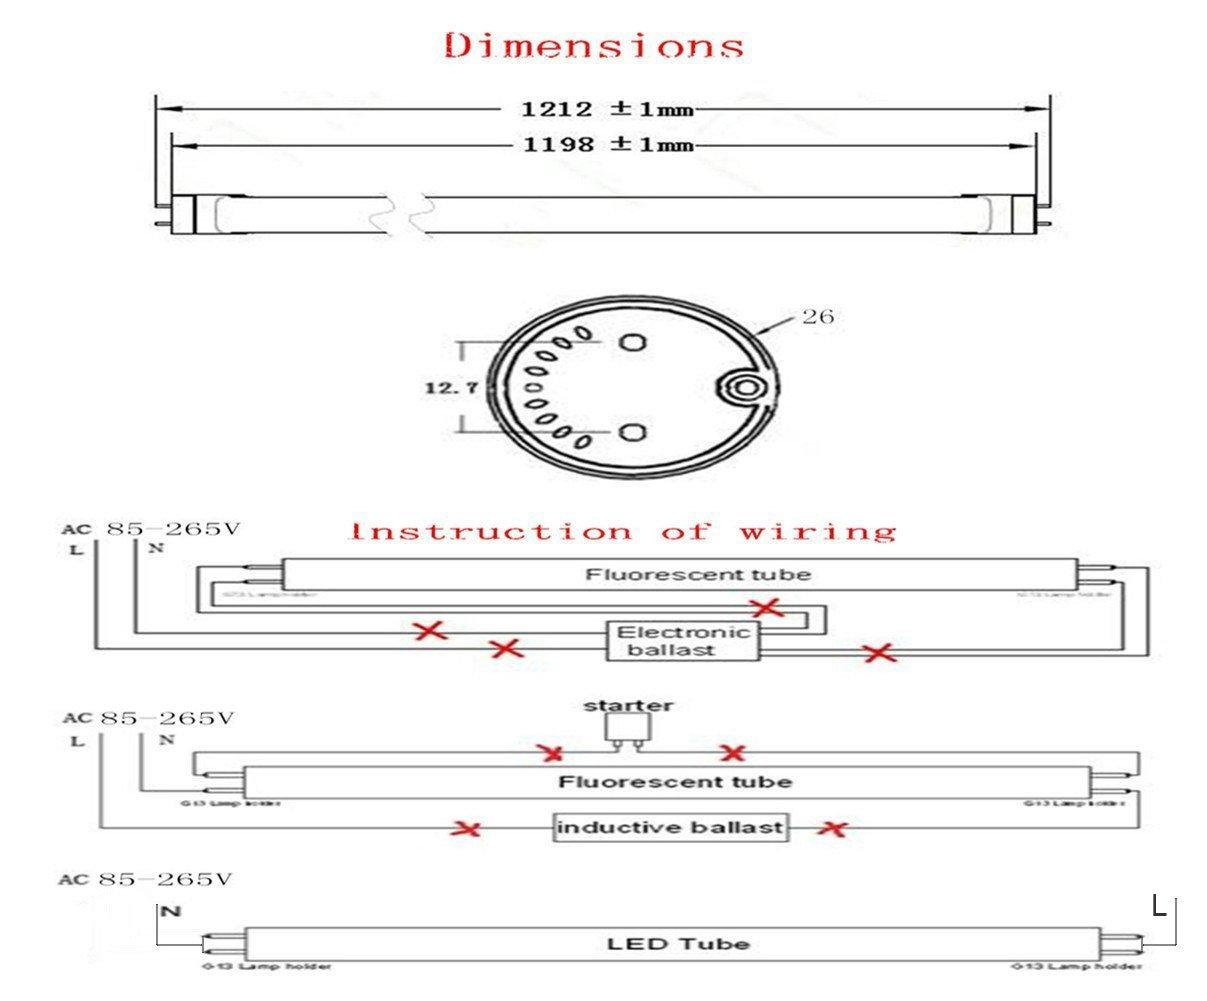 DIAGRAM] T8 Linear Constant Current Led Tube Wiring Diagram For FULL  Version HD Quality Diagram For - 1SPAGHETTIWIRING1.LALIBRAIRIEDELOUVIERS.FR1spaghettiwiring1.lalibrairiedelouviers.fr